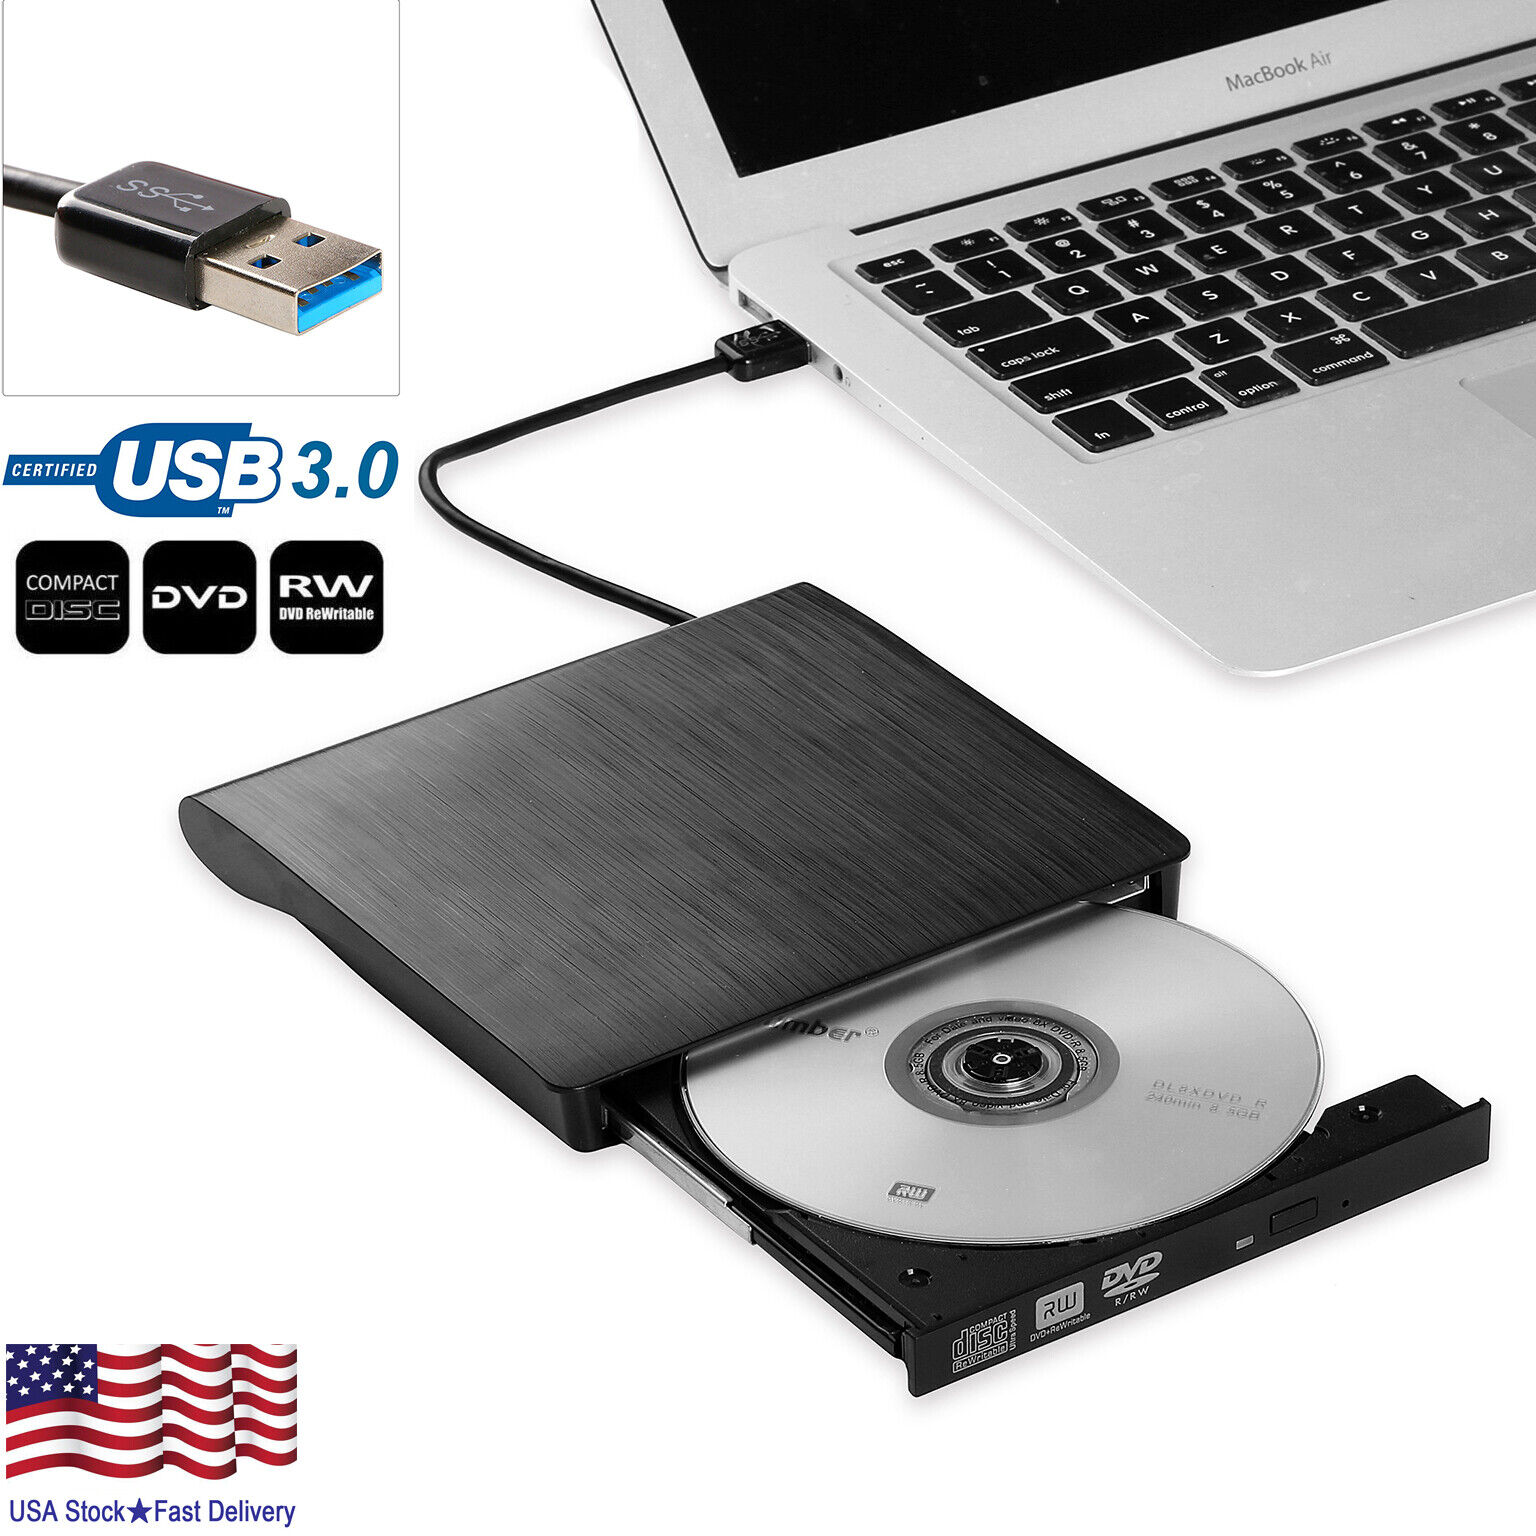 Slim External USB 3.0 DVD RW CD Writer Drive Burner Reader Player For Laptop PC CD, DVD & Blu-ray Drives